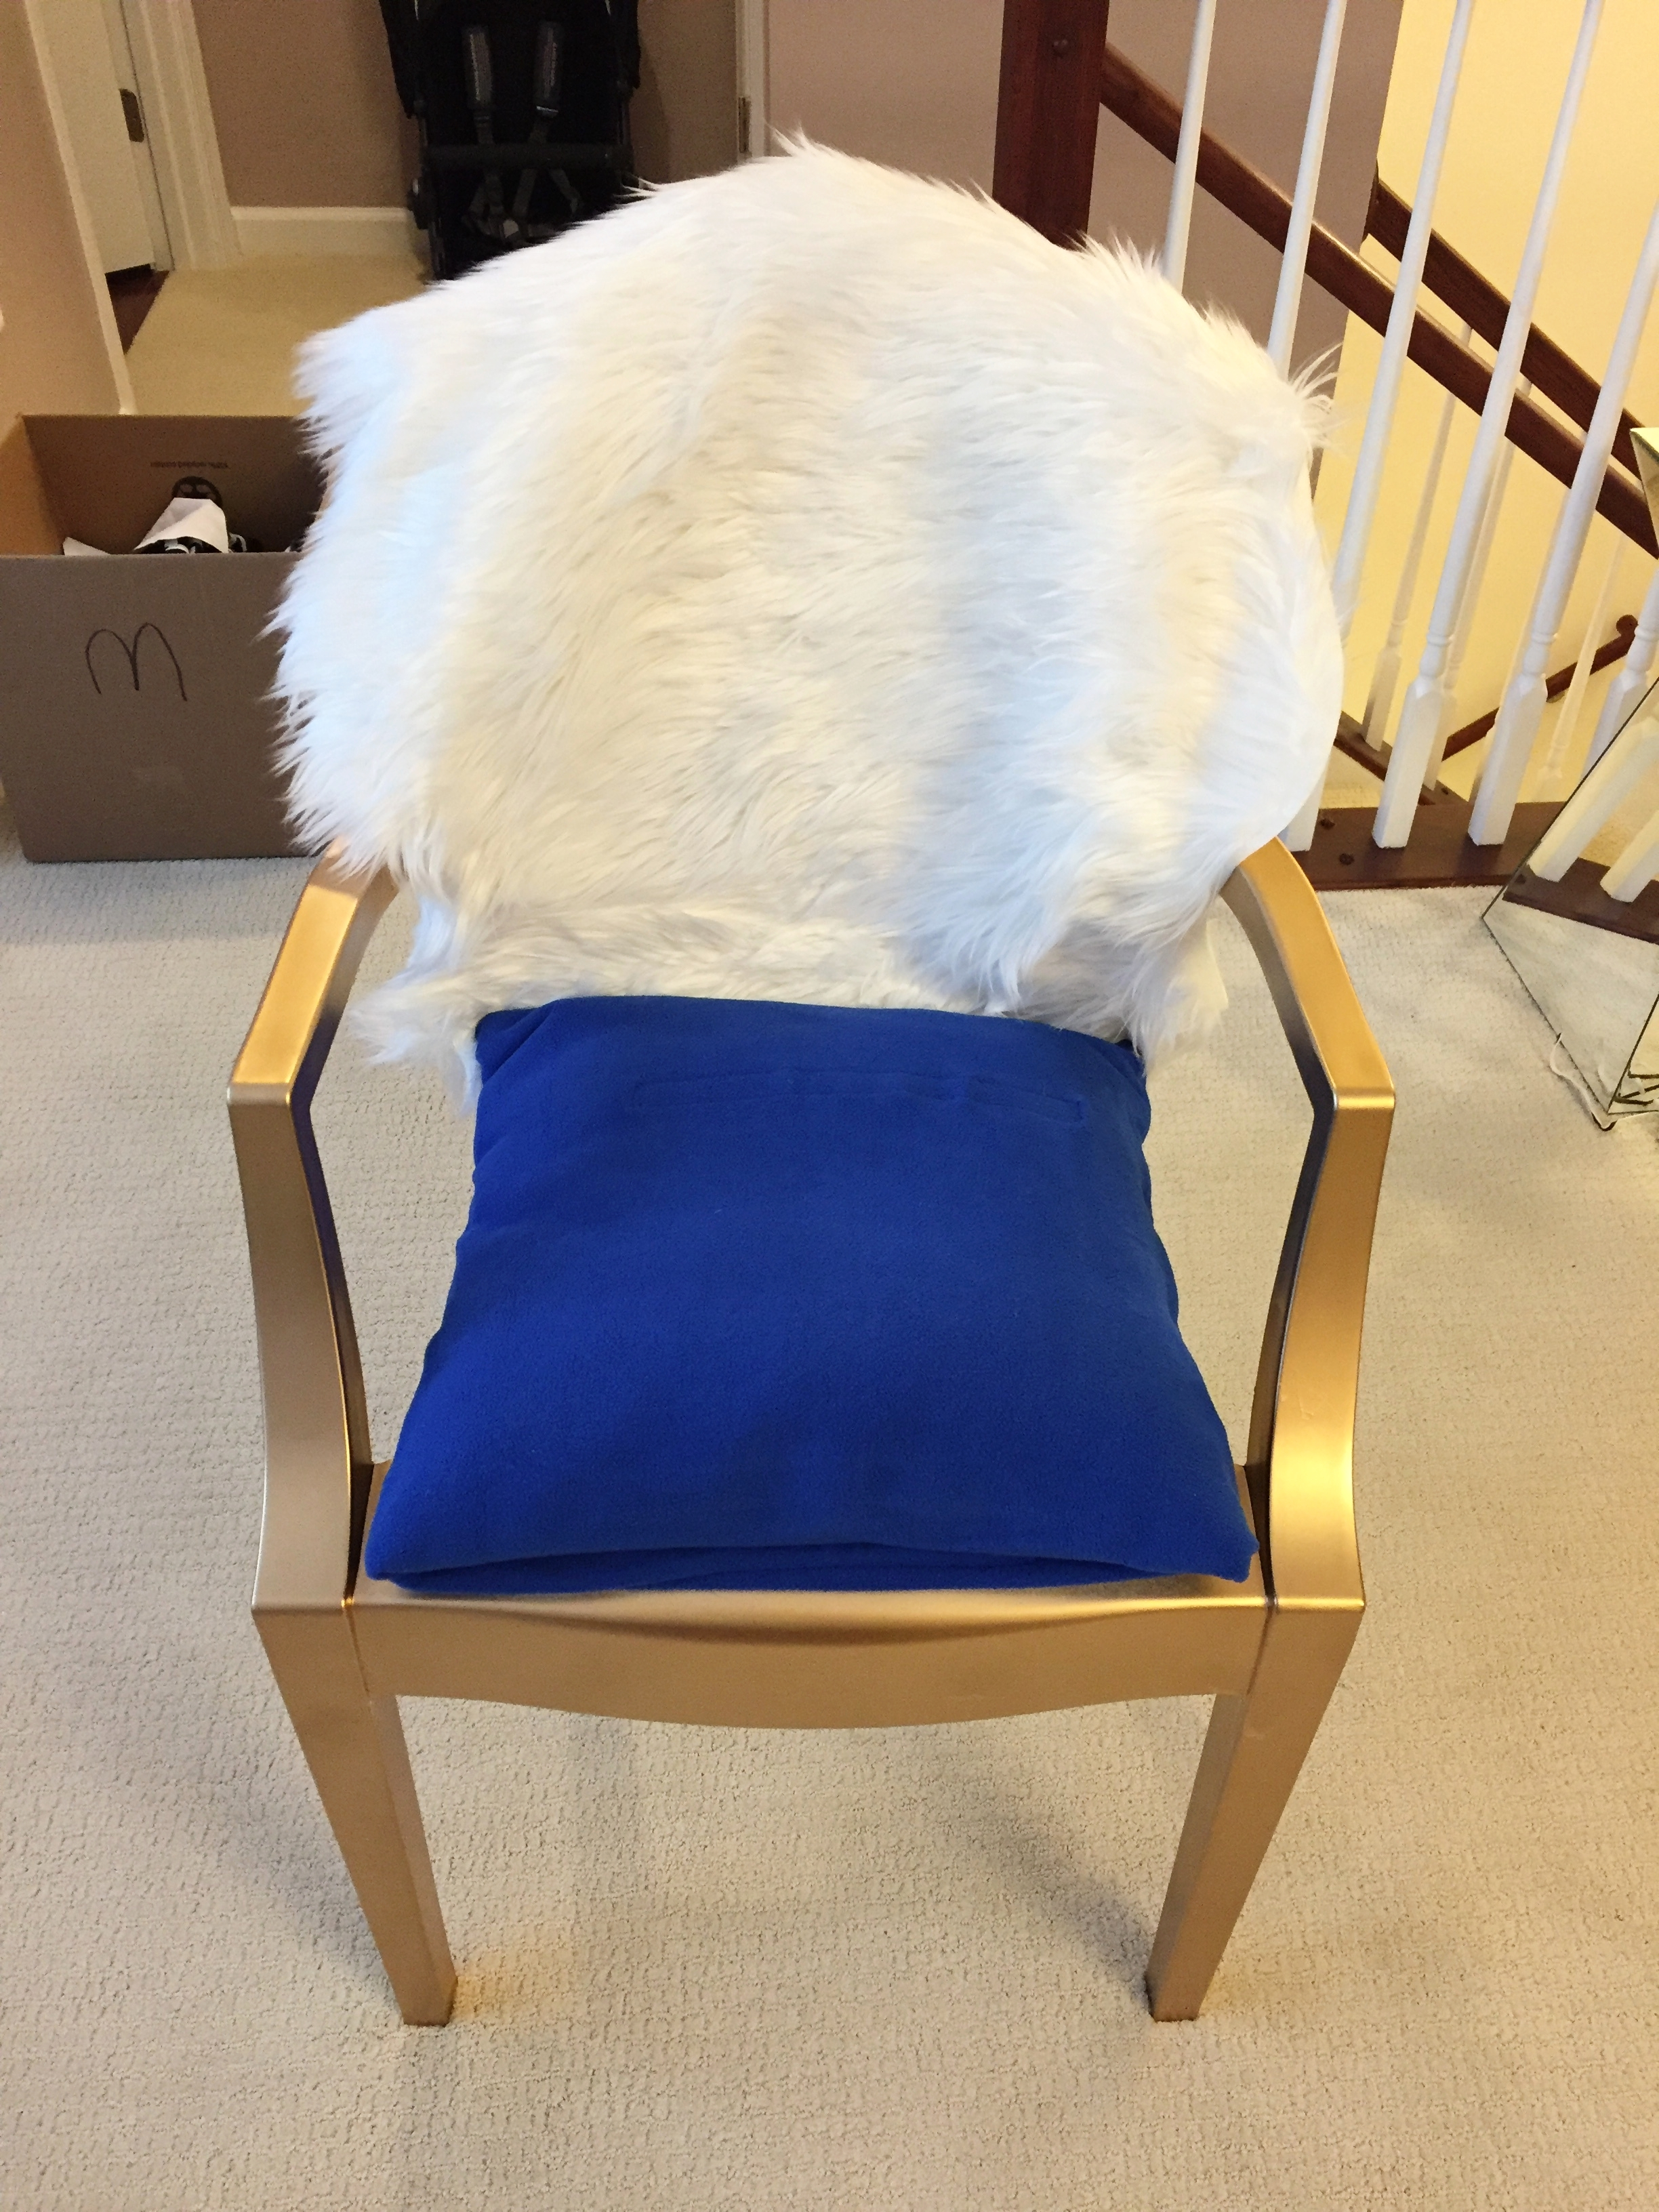 Small pillow as a seat cushion, $6-$20 at Homegoods or Target